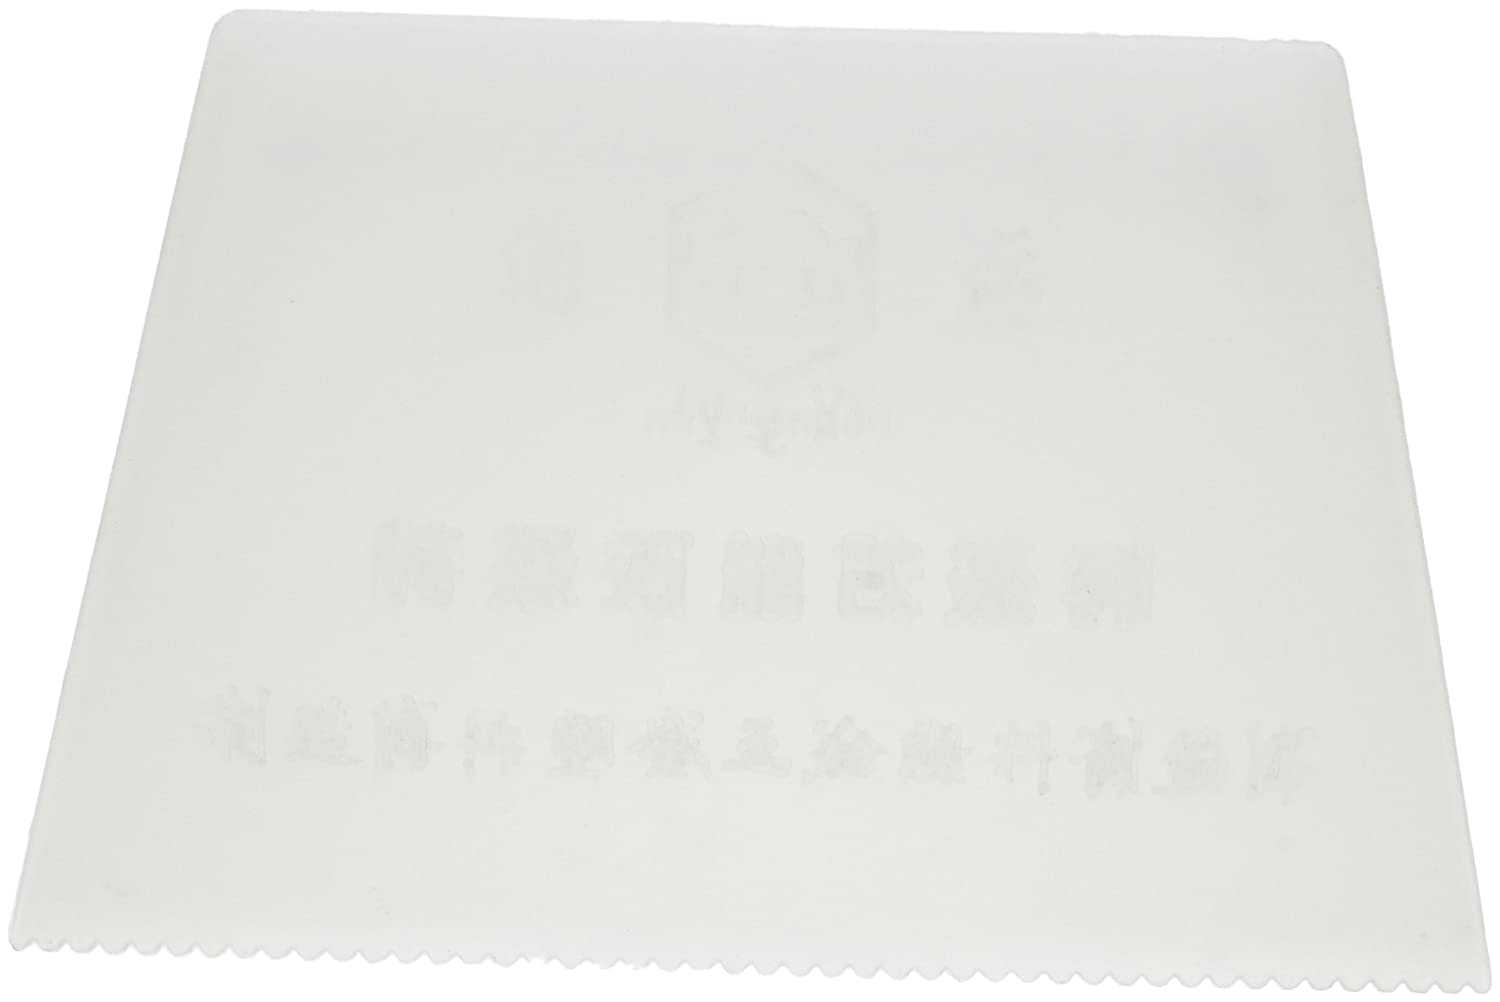 White Plastic Trapezoid Noched Paint Cake Decorator Scraper 5.1' Long Sourcingmap a14050800ux0648